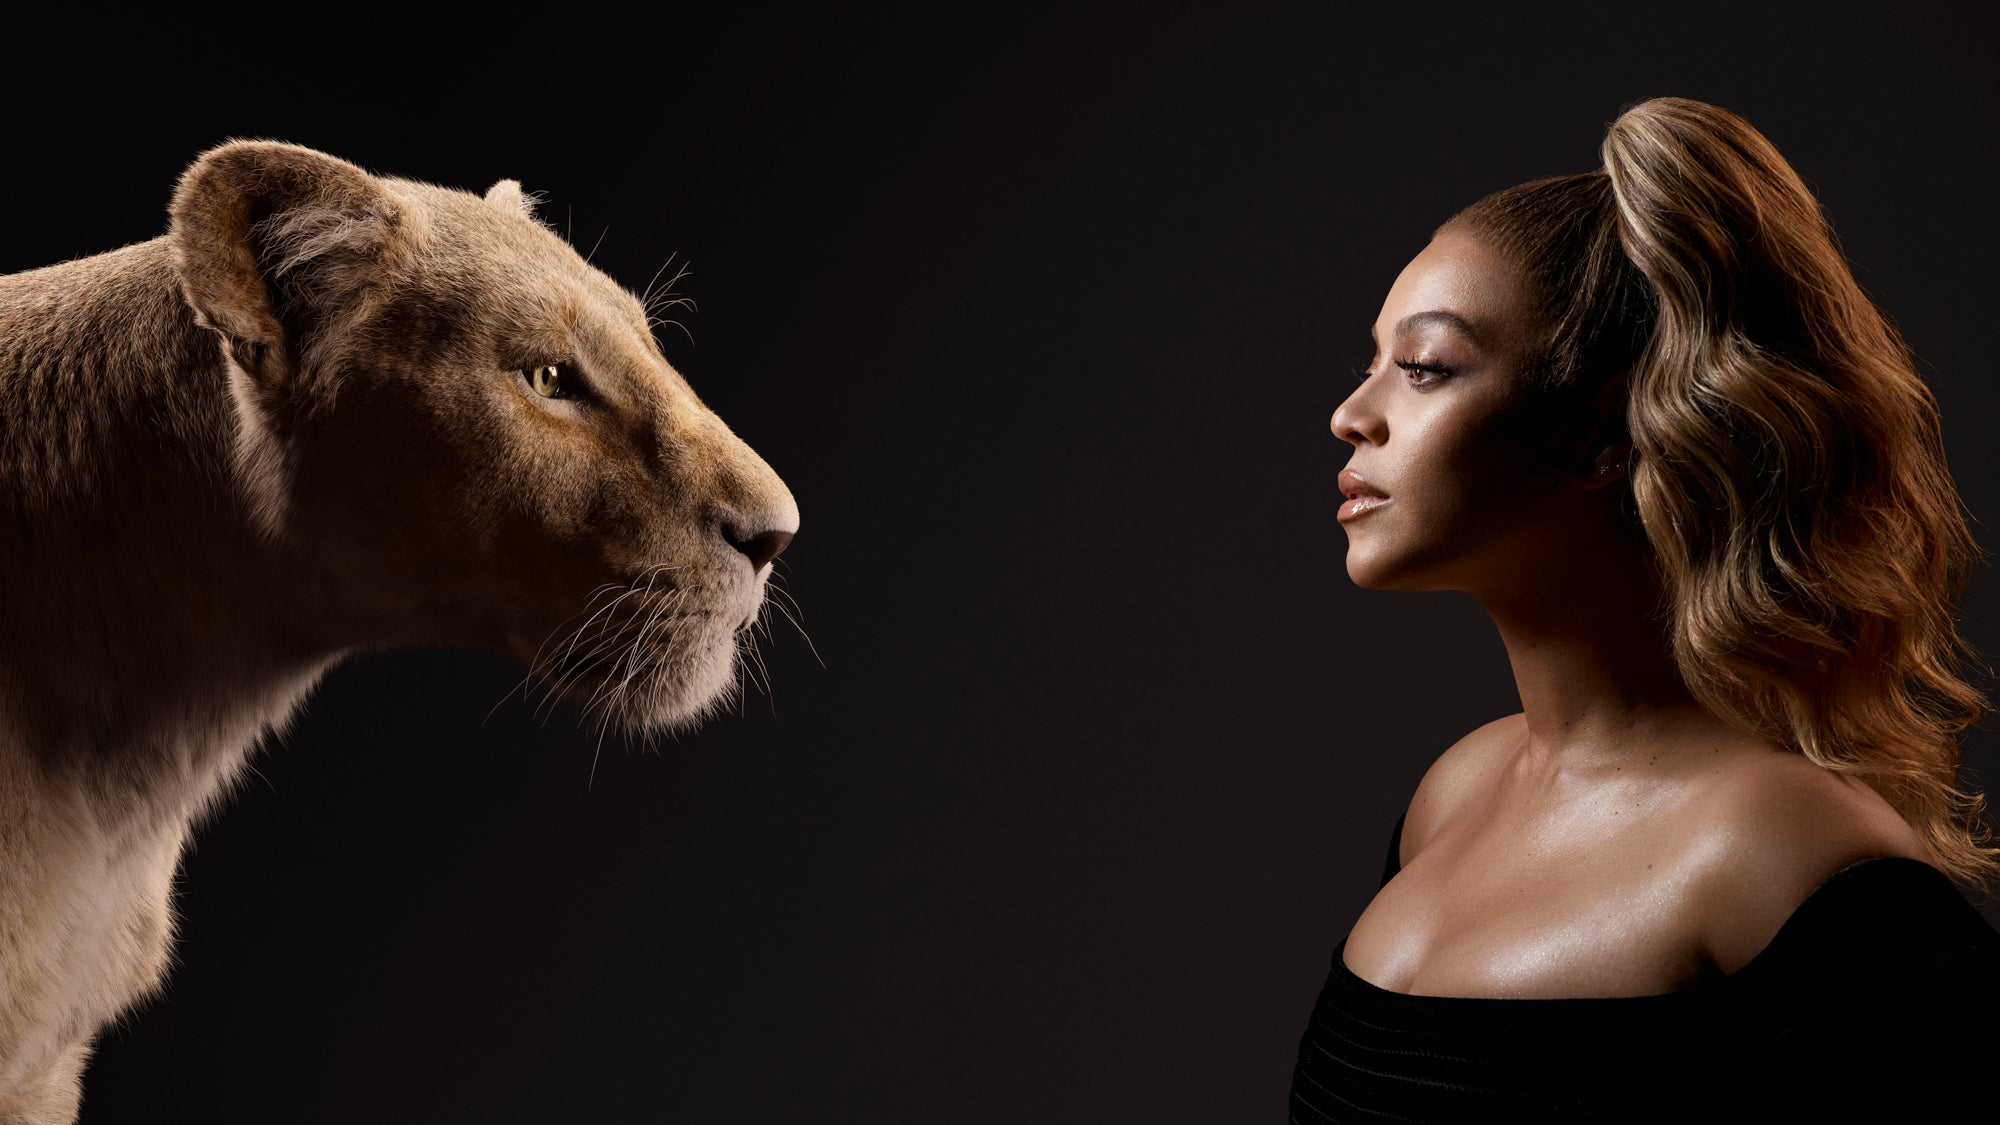 Beyonce releases The Lion King album The Gift with Jay Z, Blue Ivy, Kendrick Lamar, Childish Gambino and more – stream